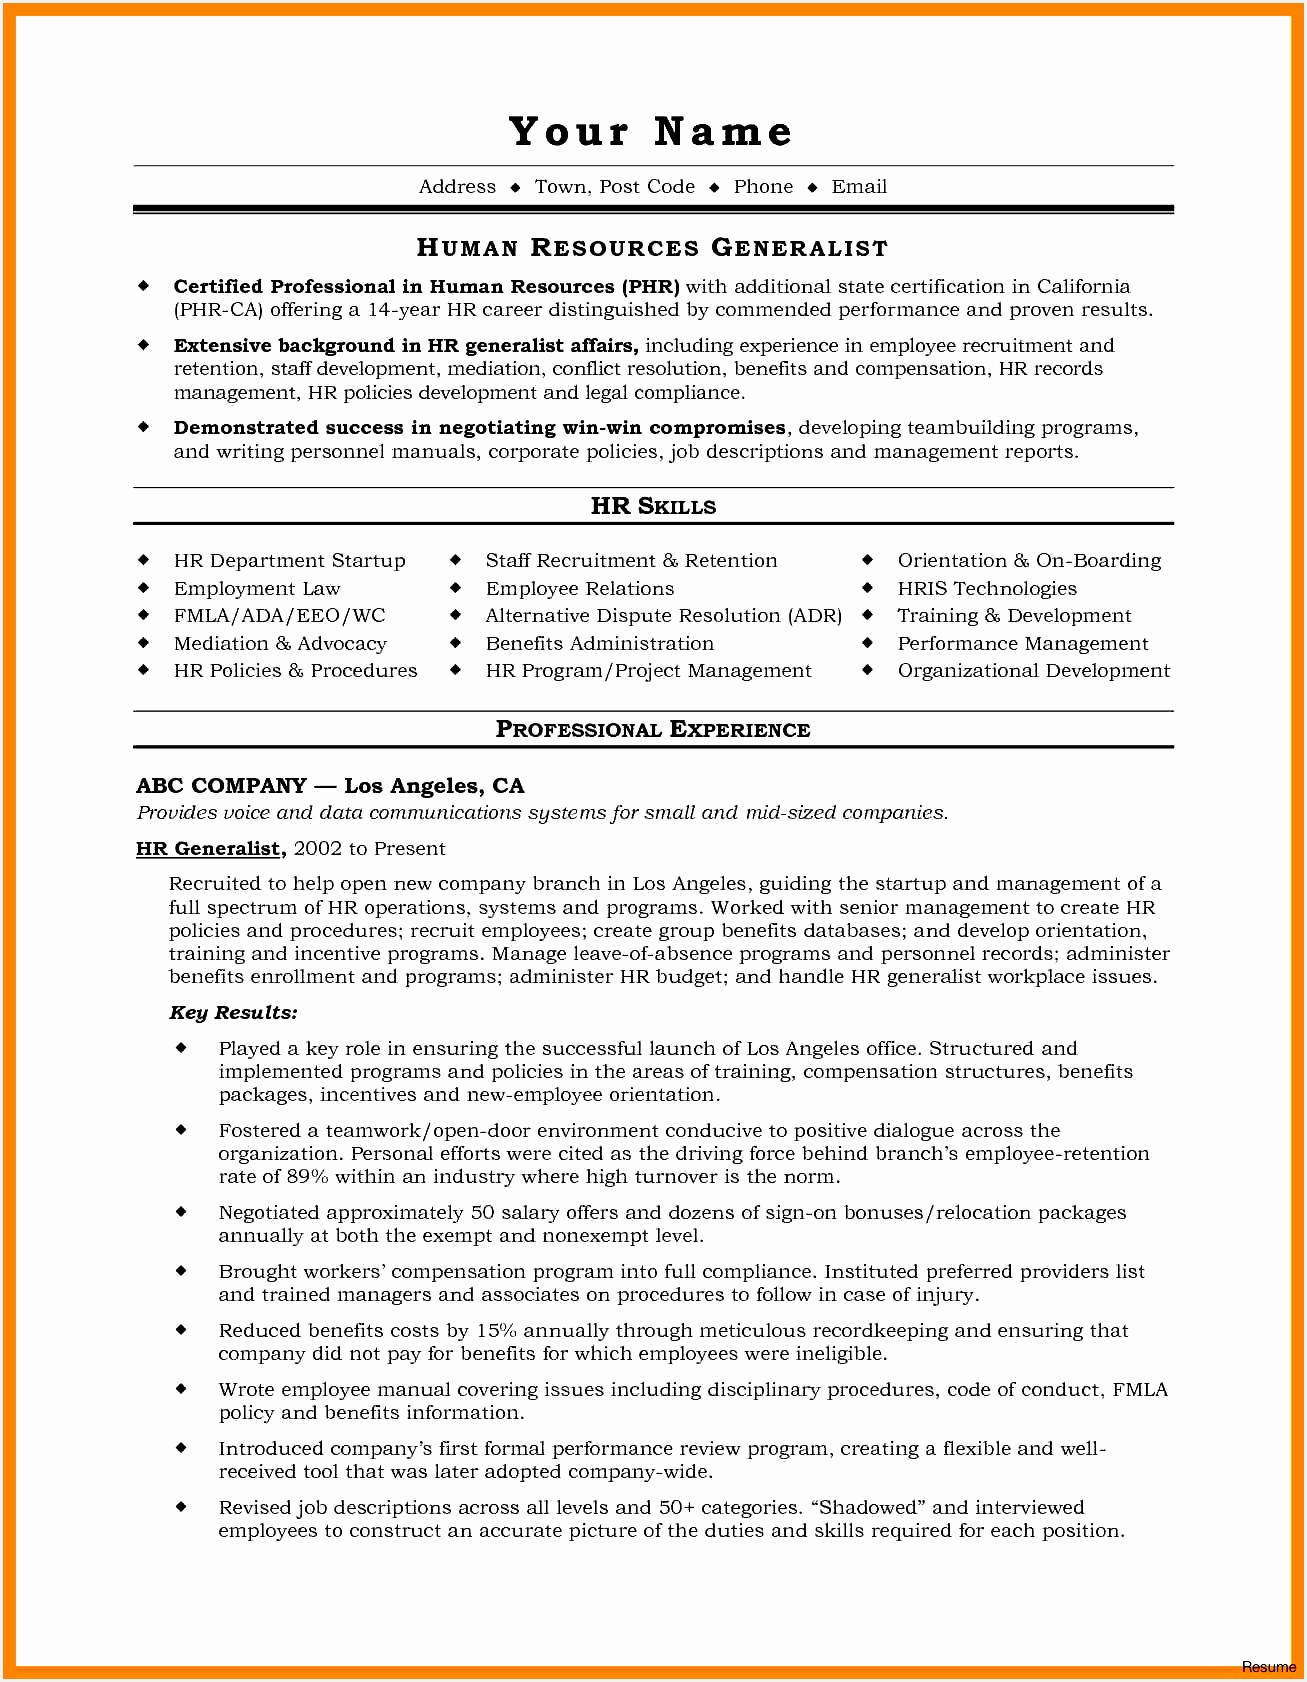 Lawyer Resume Sample Unique Email Marketing Resume Sample Unique Od Specialist Sample Resume16821307